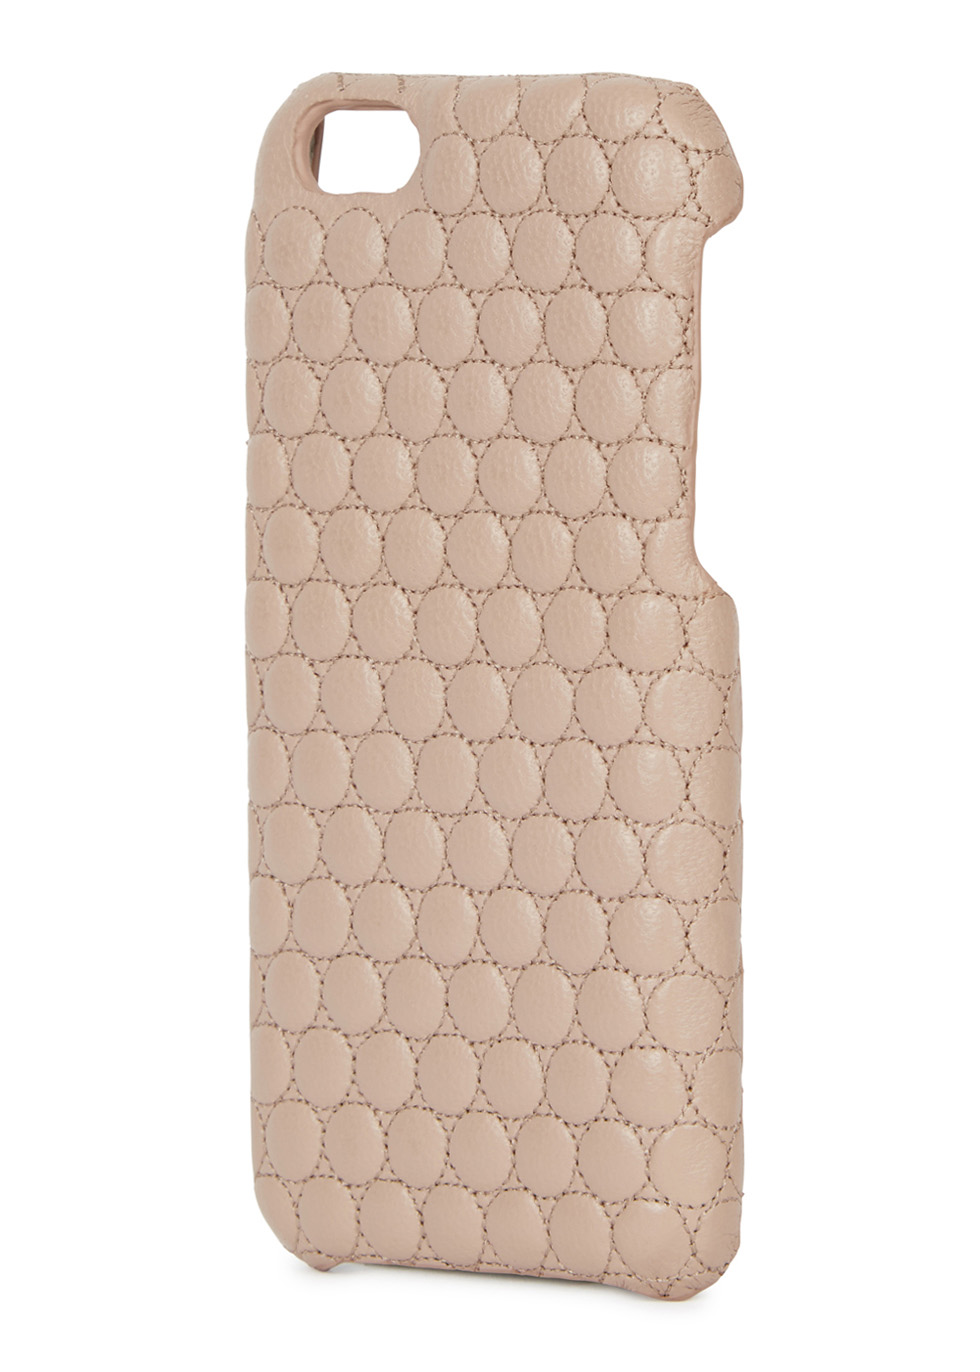 Taupe quilted leather iPhone 6/6S case - The Case Factory